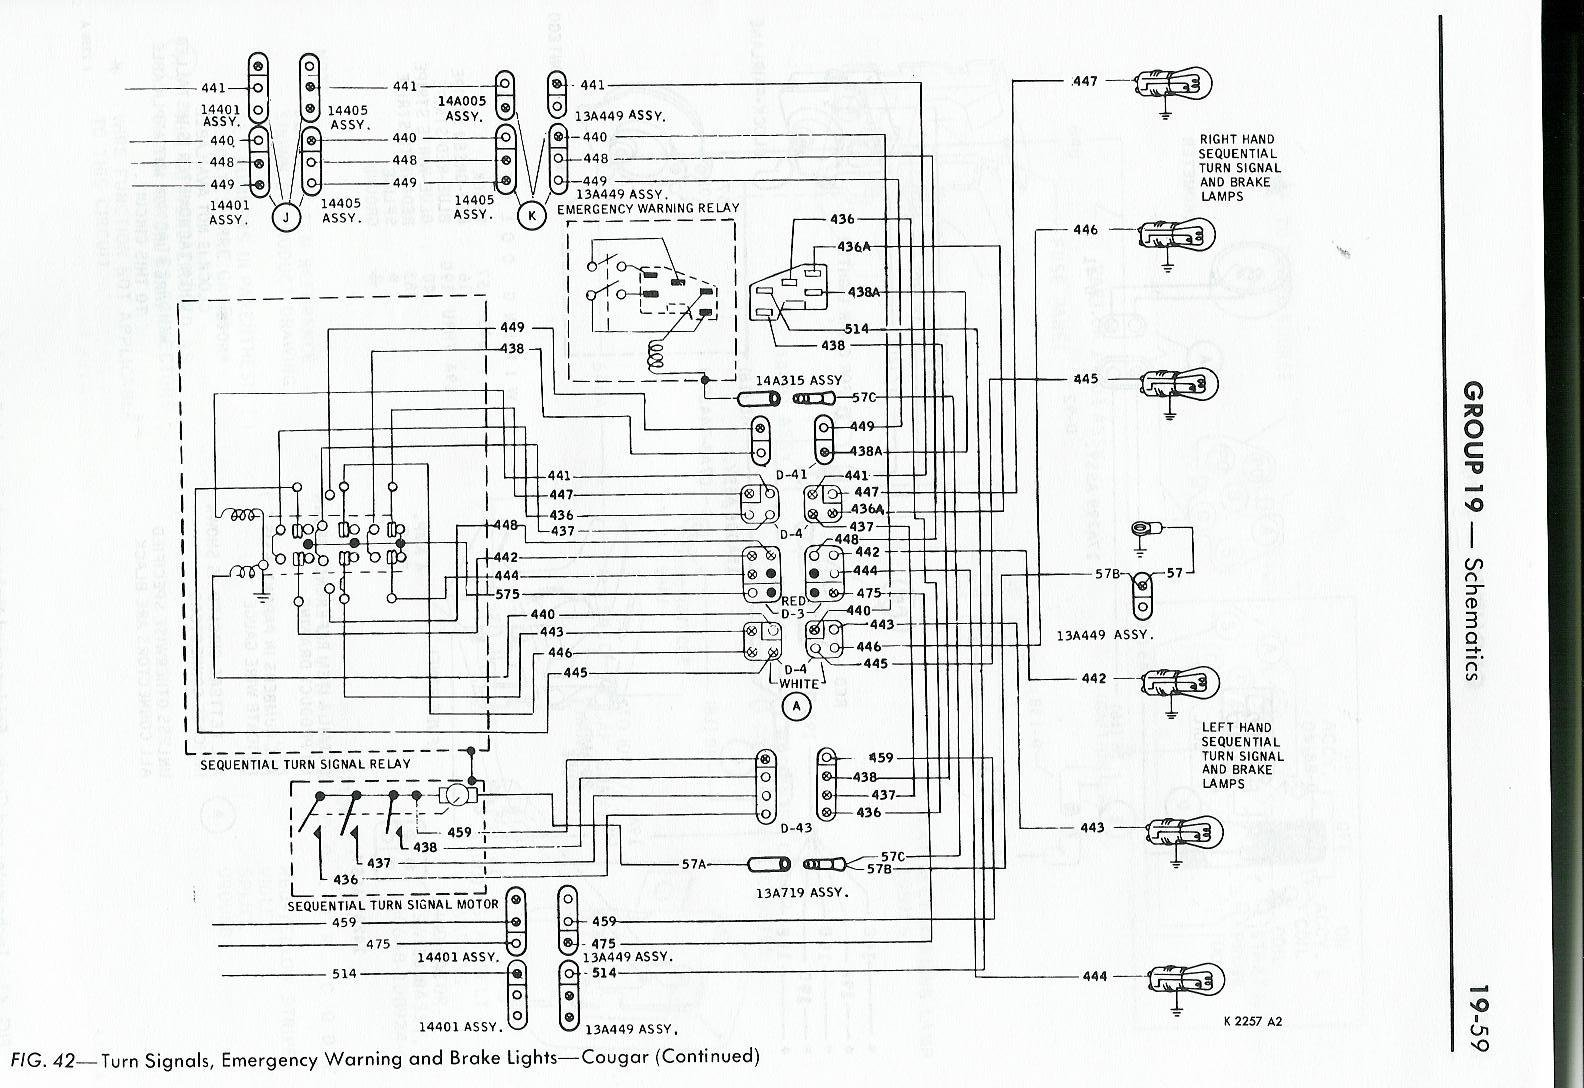 1968 Mustang Turn Signal Wiring Diagram Schematic Manual Of F100 Nemetas Aufgegabelt Info Rh